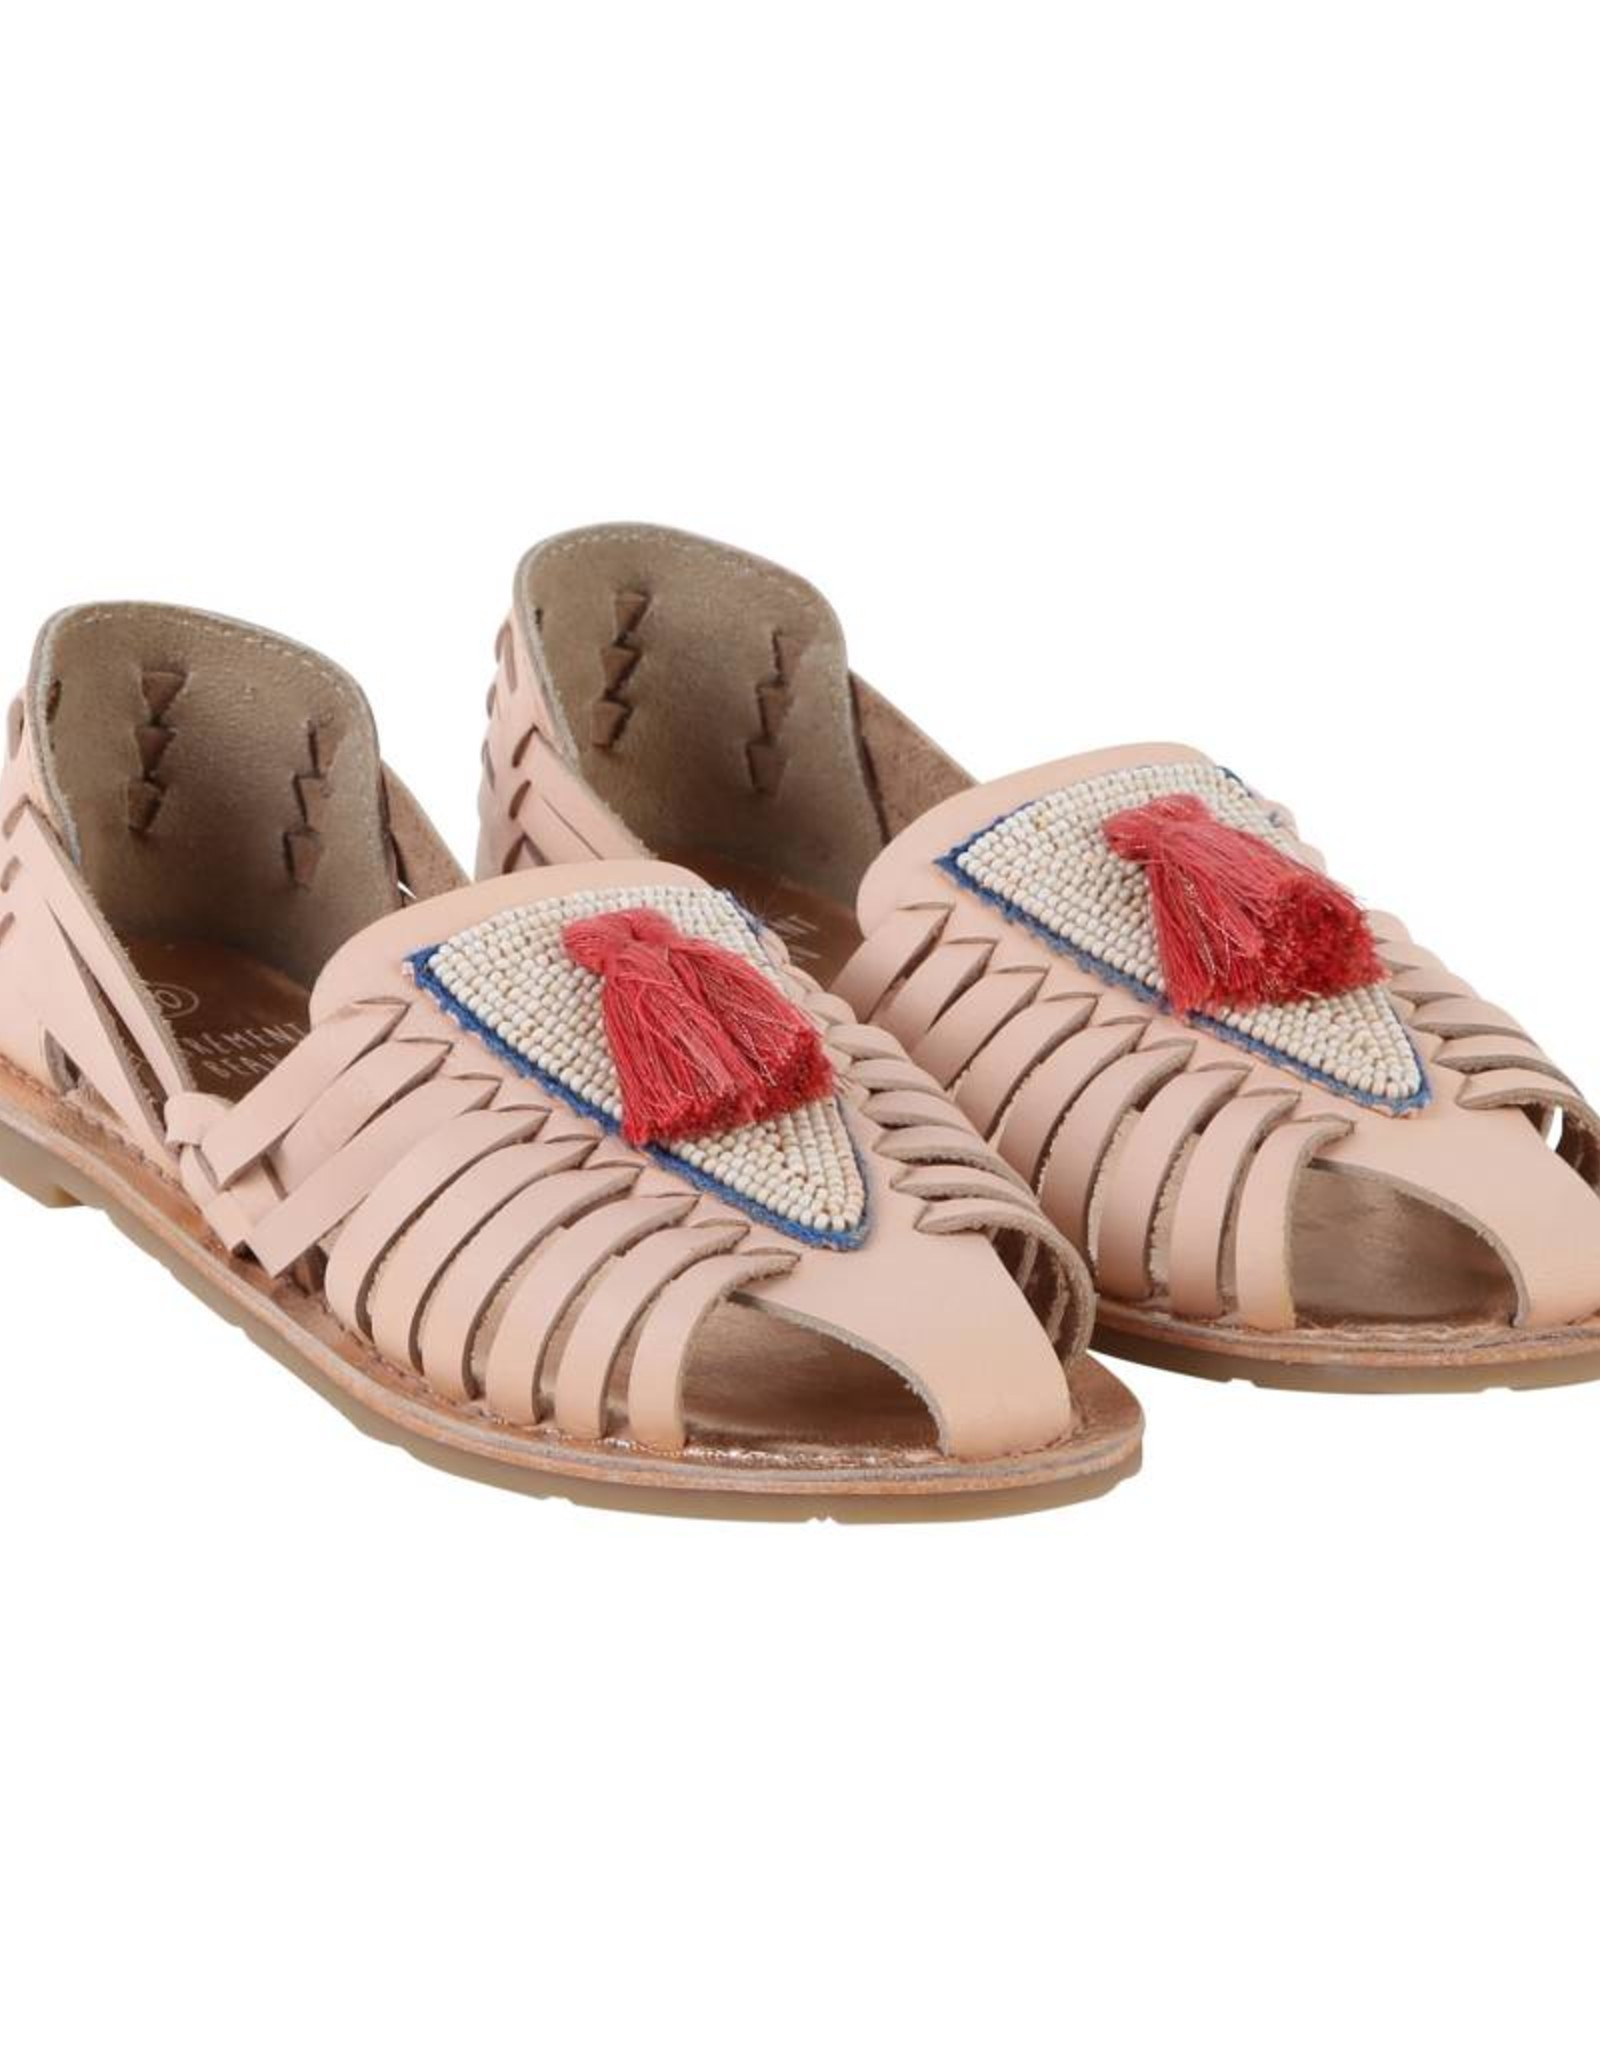 Carrément Beau Tassel Leather sandals